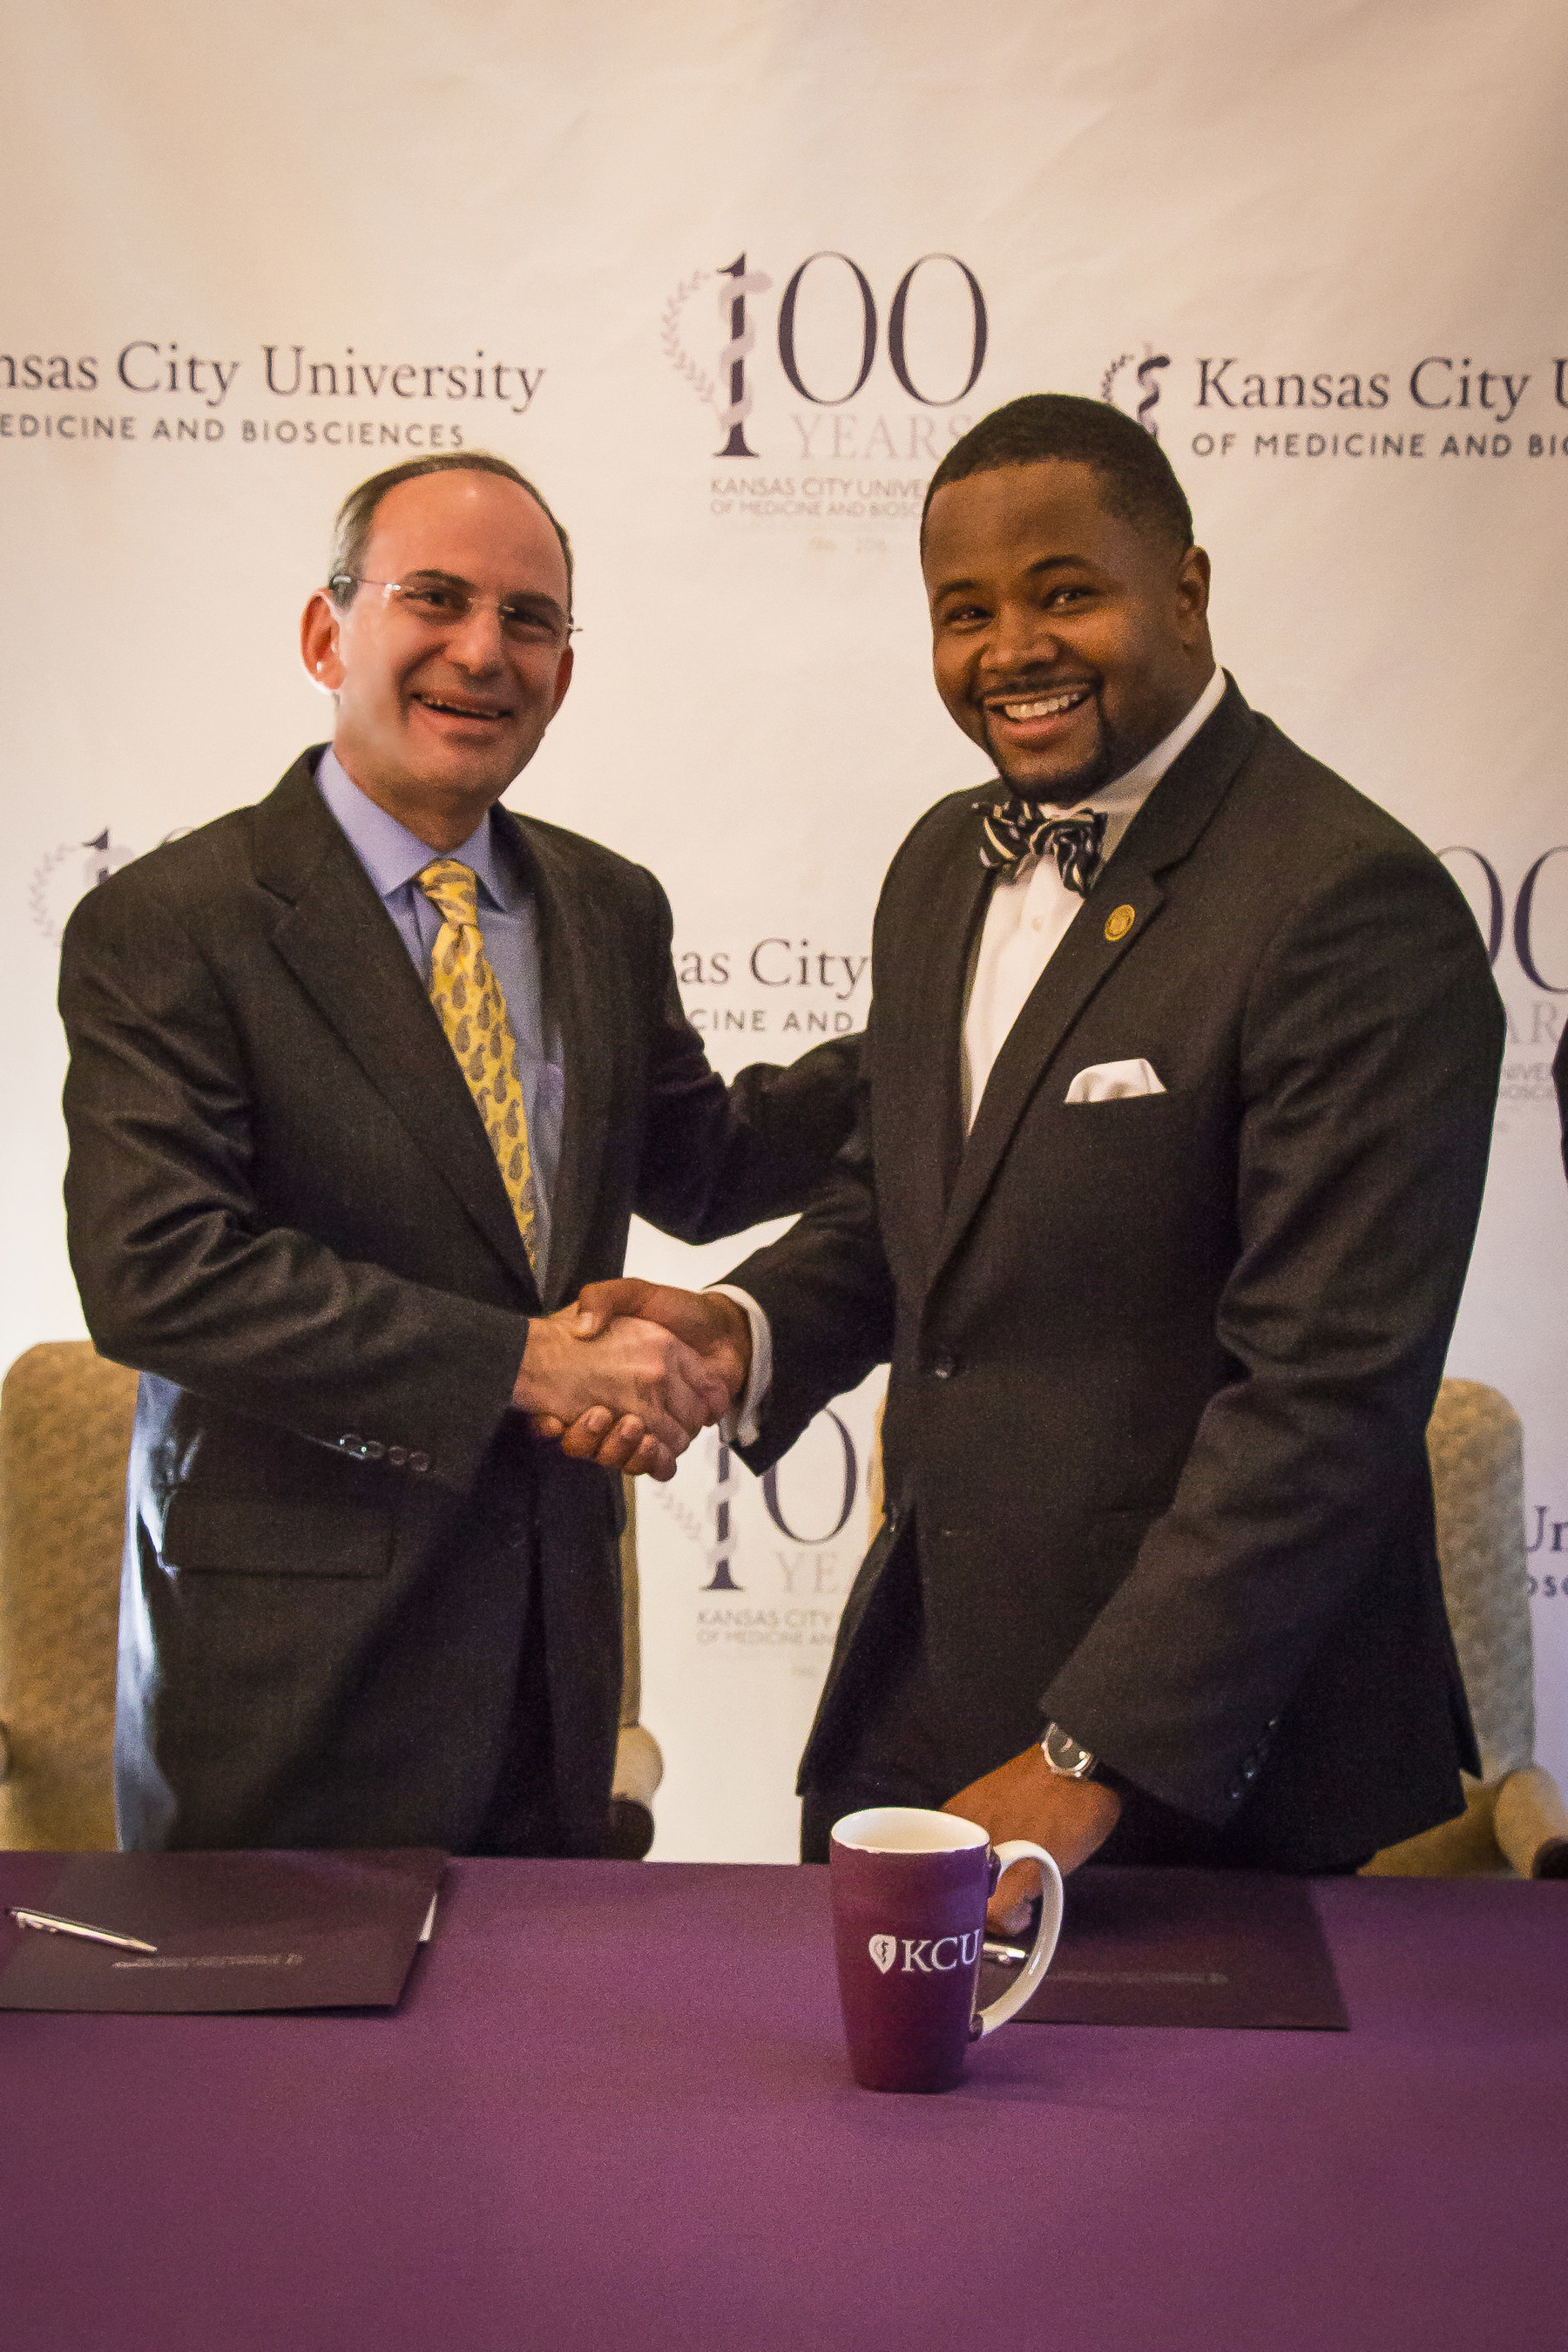 Marc B. Hahn, DO, president and chief executive officer of KCU and Dwaun J. Warmack, PhD, president of Harris-Stowe State University shake hands following the signing ceremony.